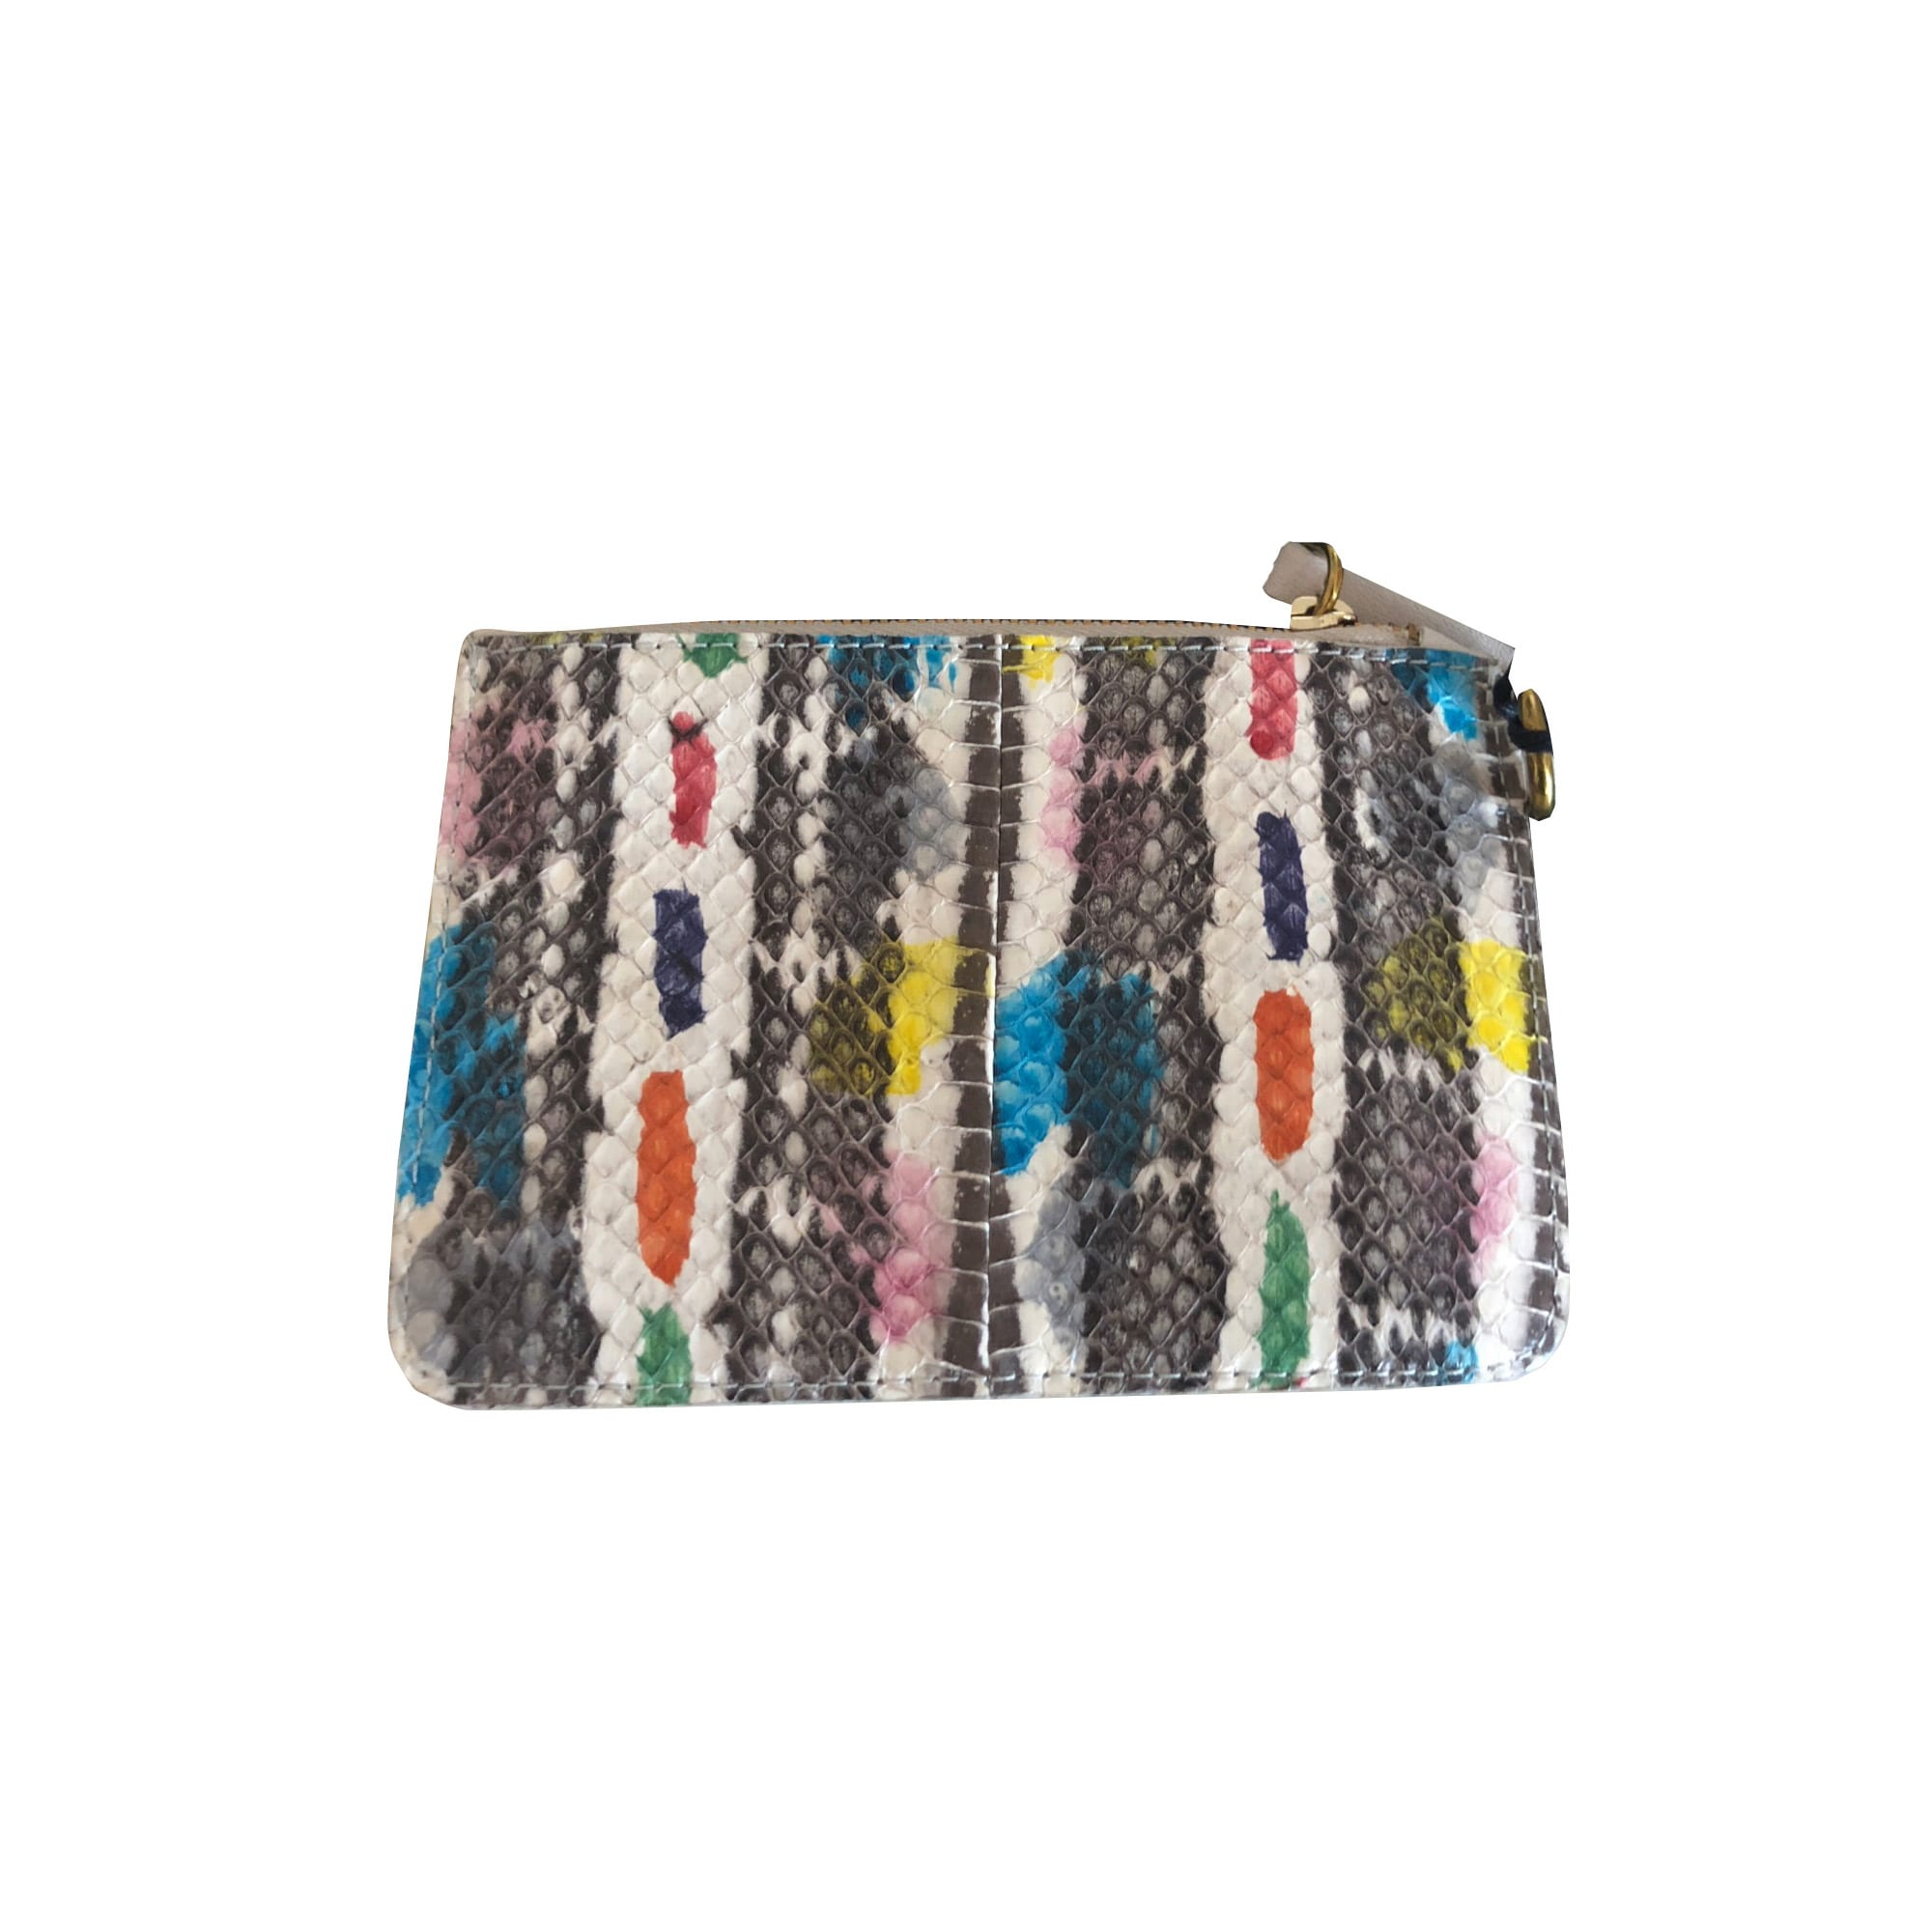 Clutch JEROME DREYFUSS Multicolor